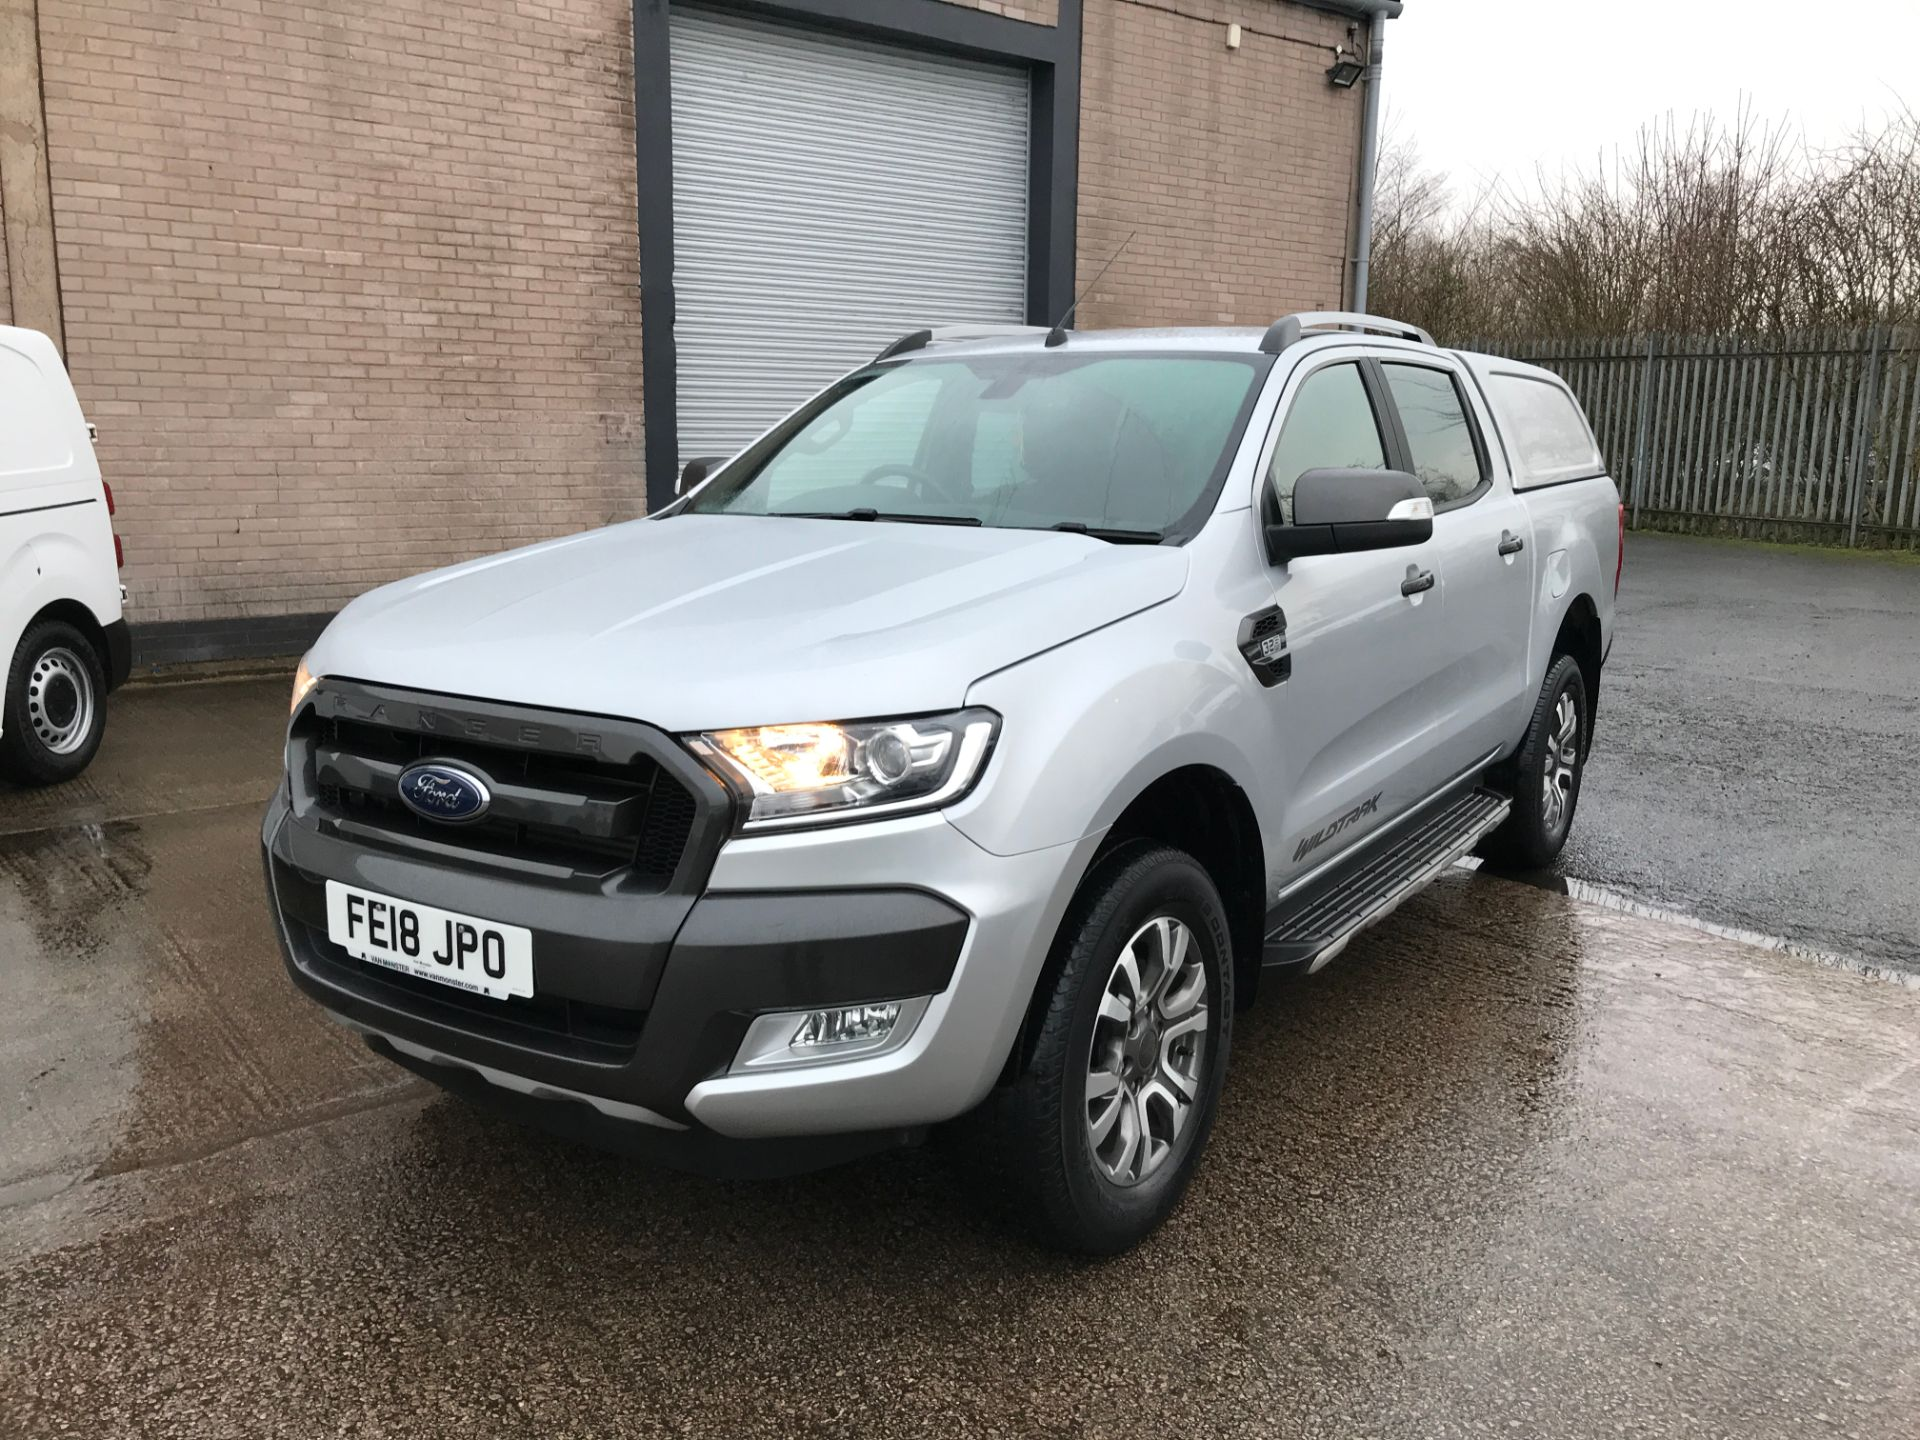 2018 Ford Ranger DOUBLE CAB 4X4 WILDTRAK 3.2TDI 200PS EURO 5 (FE18JPO) Thumbnail 13